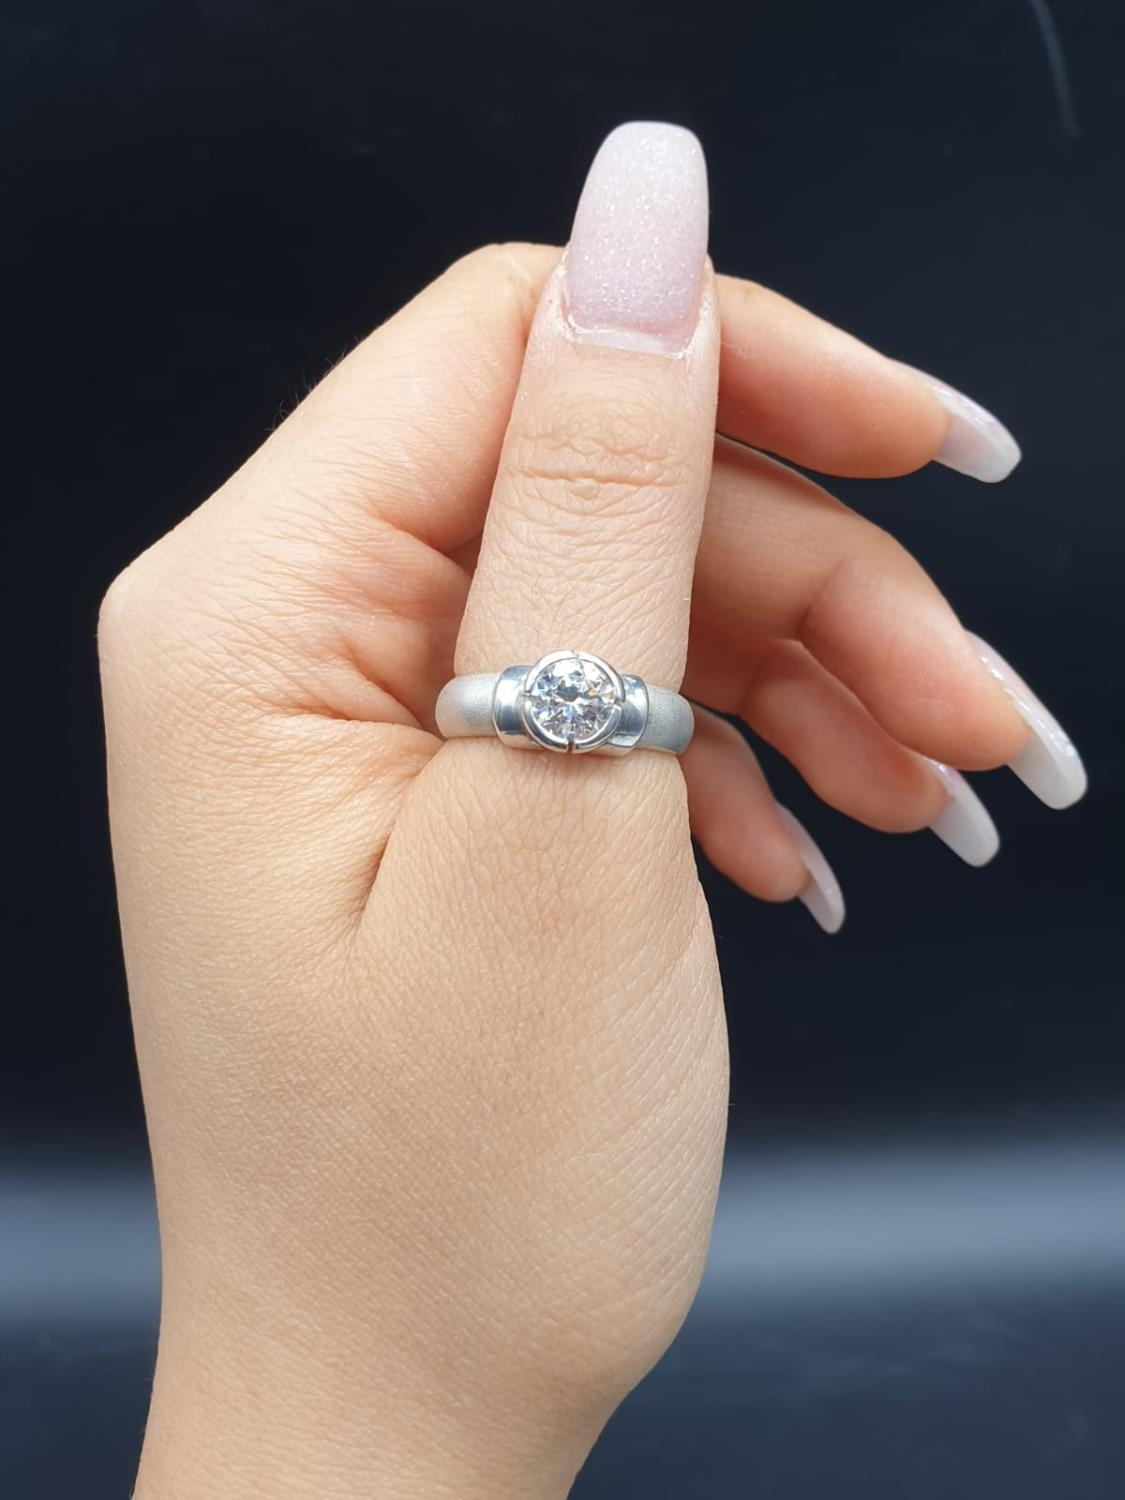 Silver Ring with large CZ Stone 3.6g Size P - Image 5 of 7